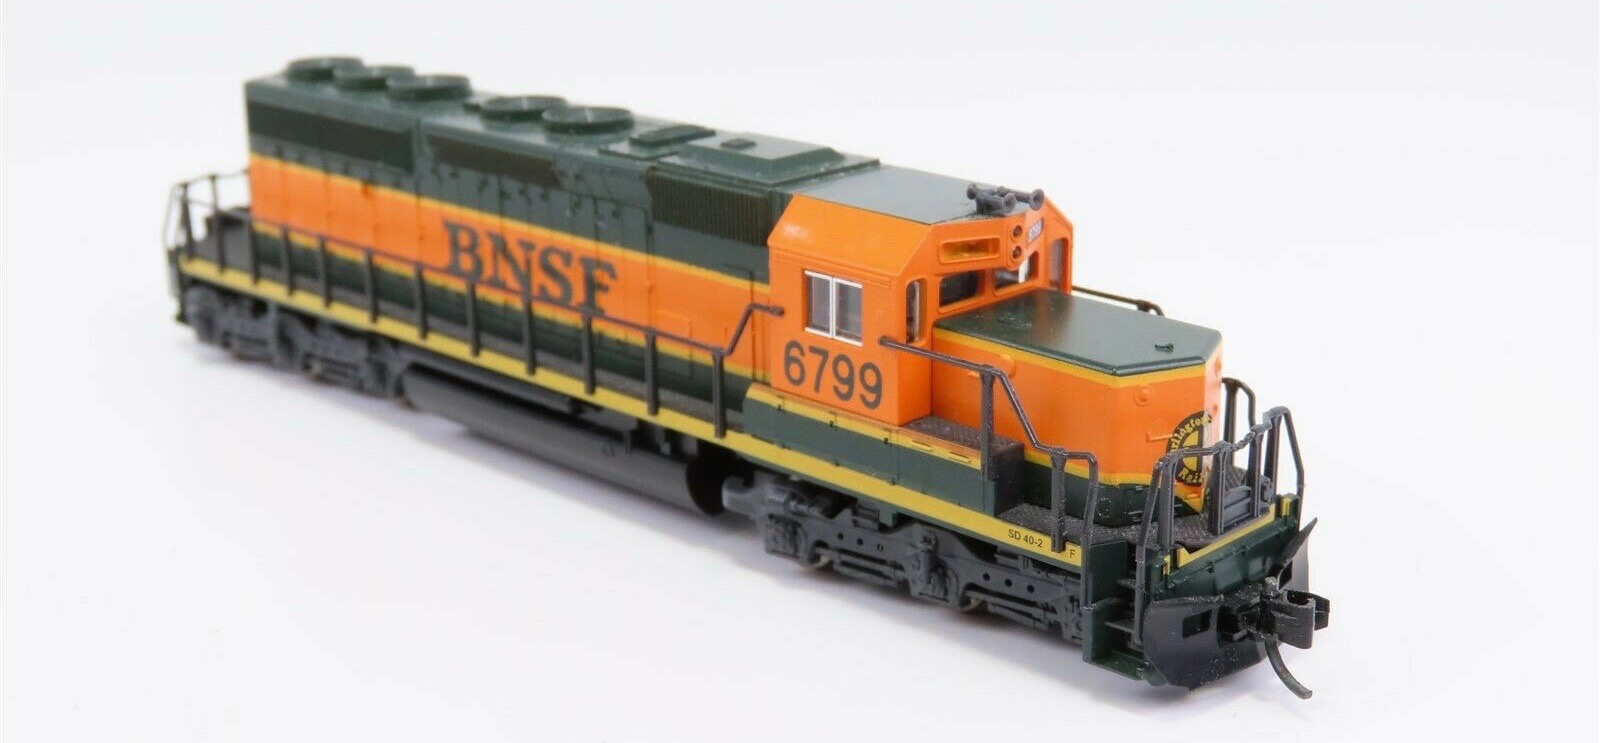 N Scale - Kato USA - 176-4901 - Locomotive, Diesel, EMD SD40-2 - Burlington Northern Santa Fe - 6799